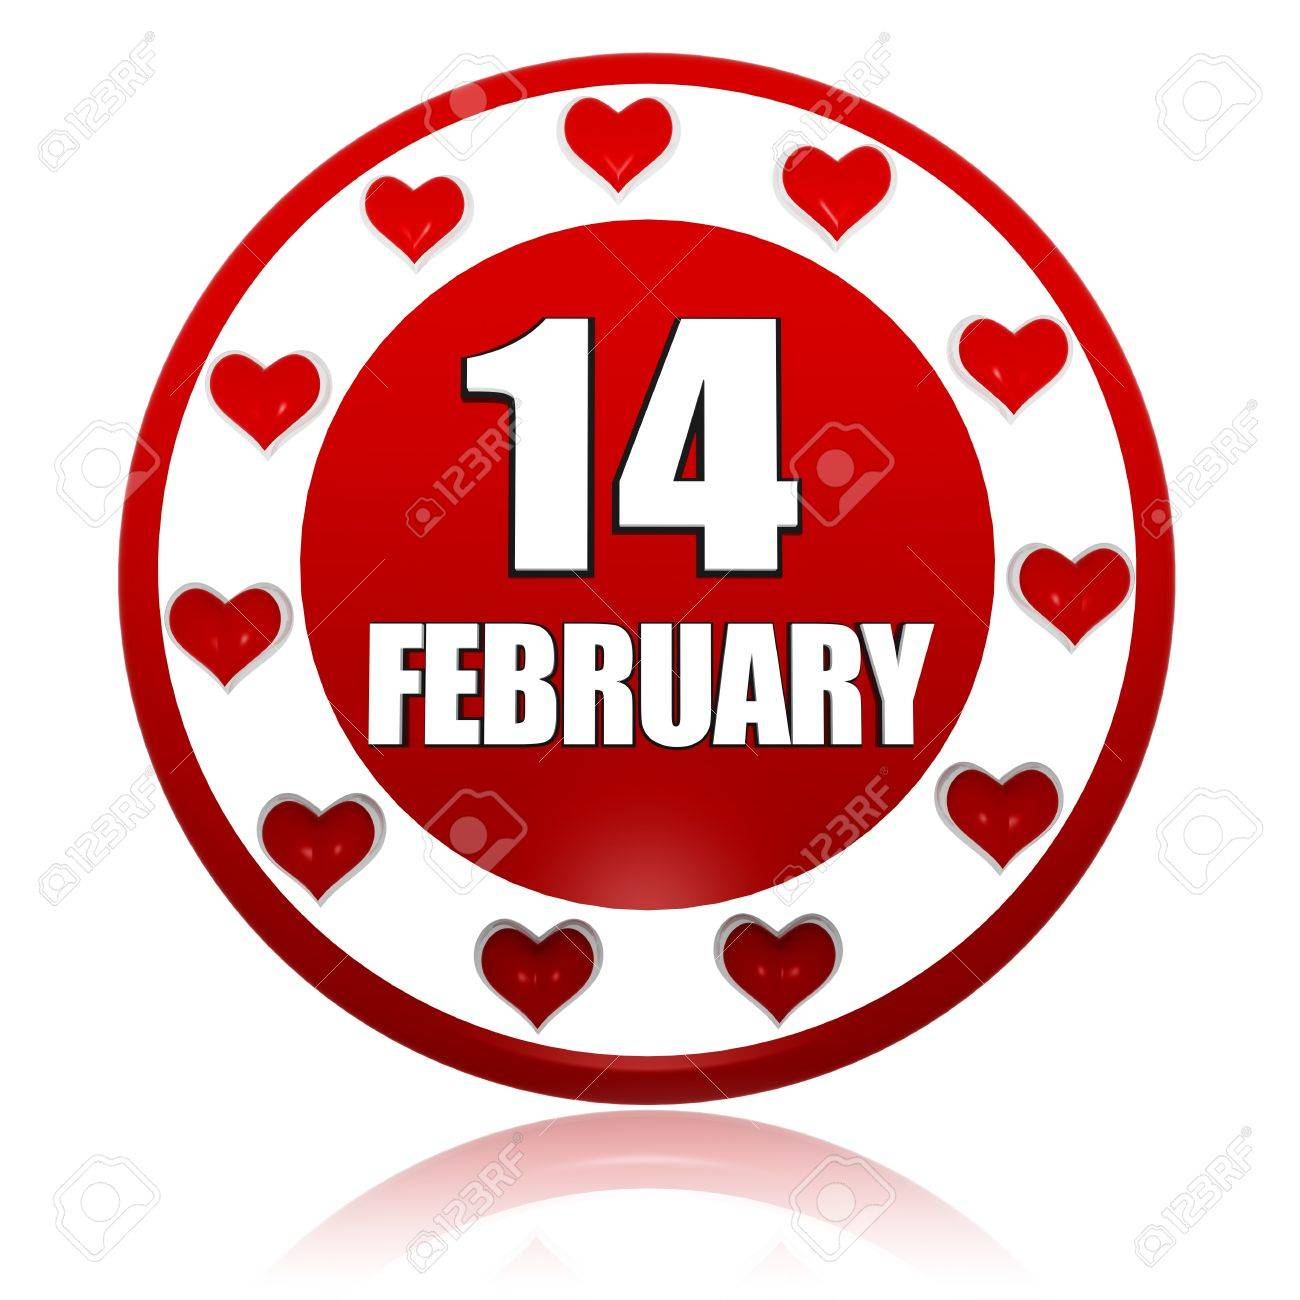 3d red circle banner with white text february 14 and hearts 3d red circle banner with white text february 14 and hearts symbols holiday concept stock biocorpaavc